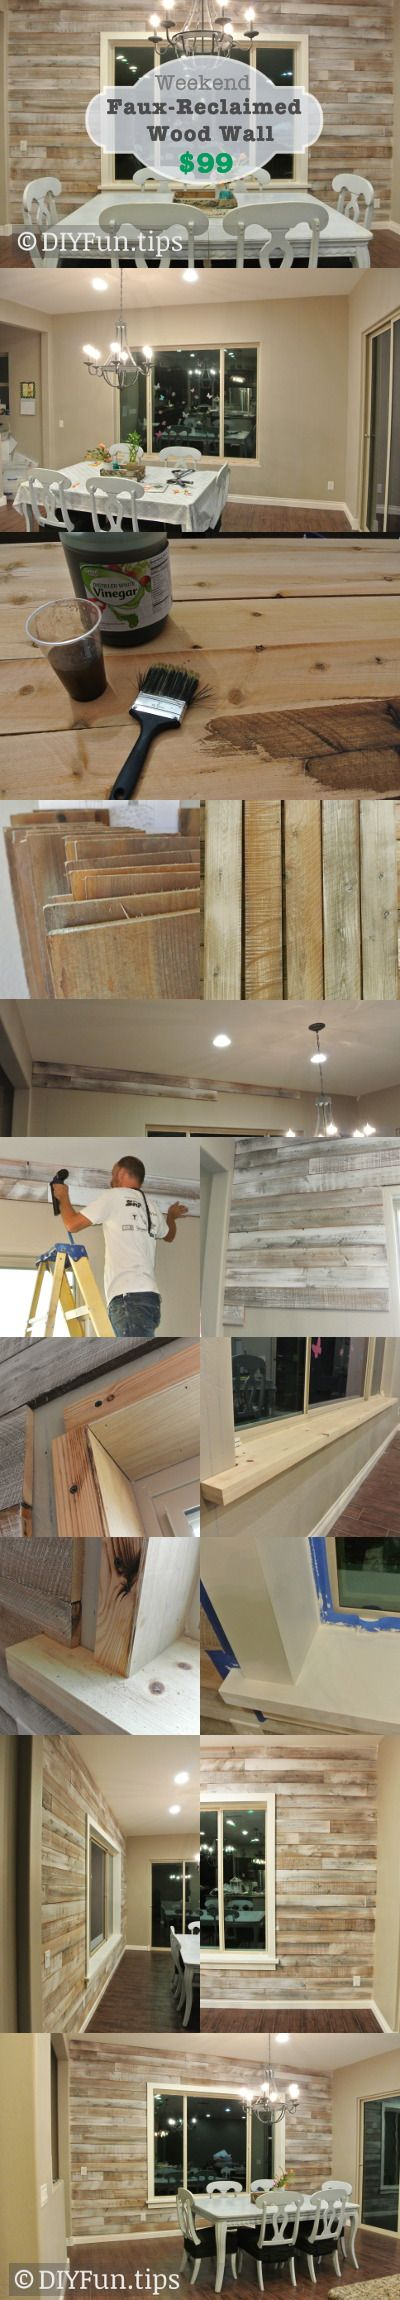 Diy Faux Reclaimed Wood Wall Put Up A For Less Than 99 Bucks